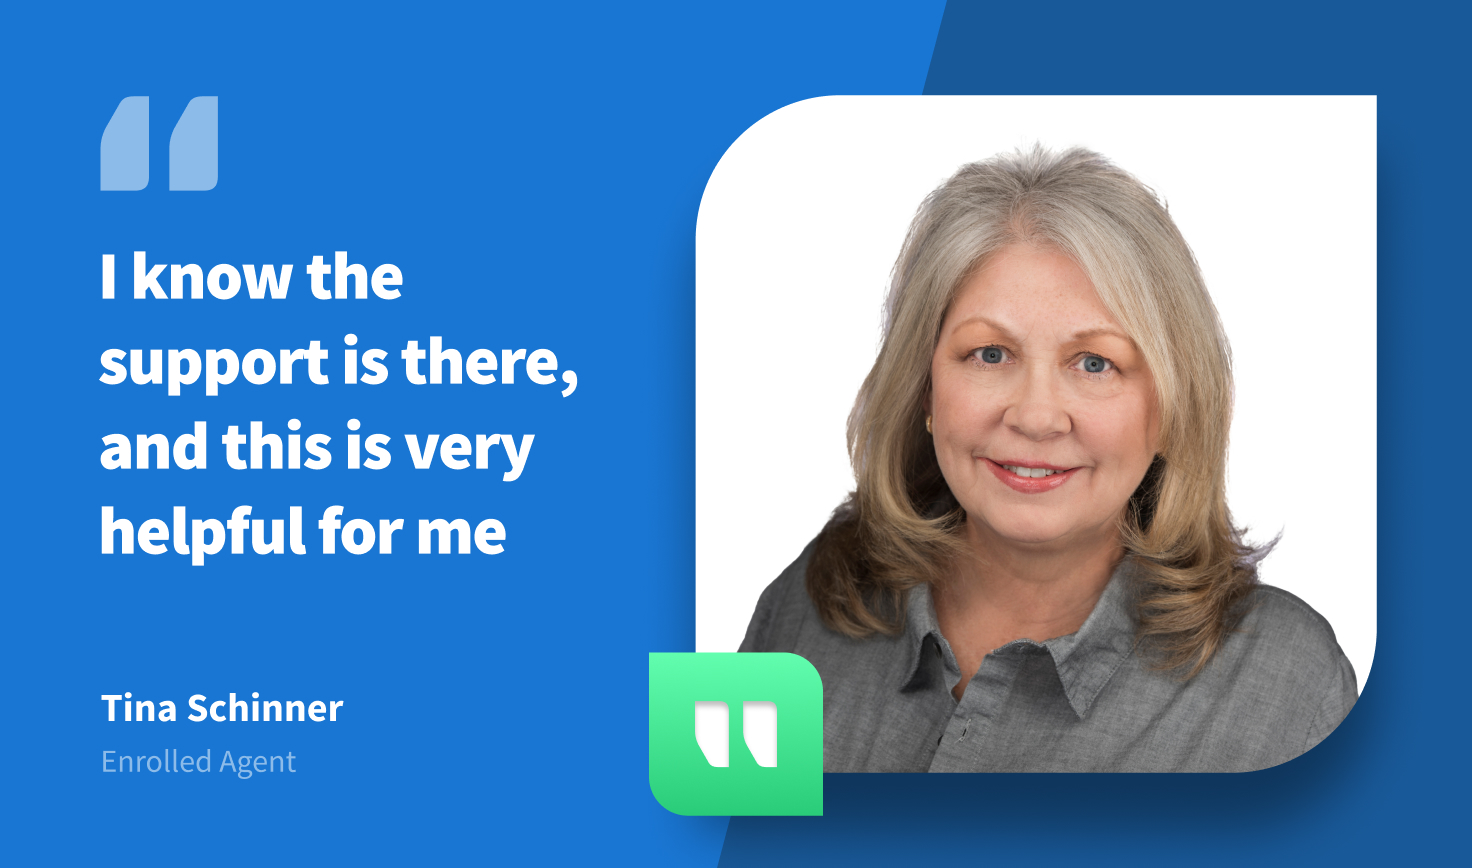 Tina Schinner on TaxDome 'I Know the Support is There, and This is Very Helpful for Me'